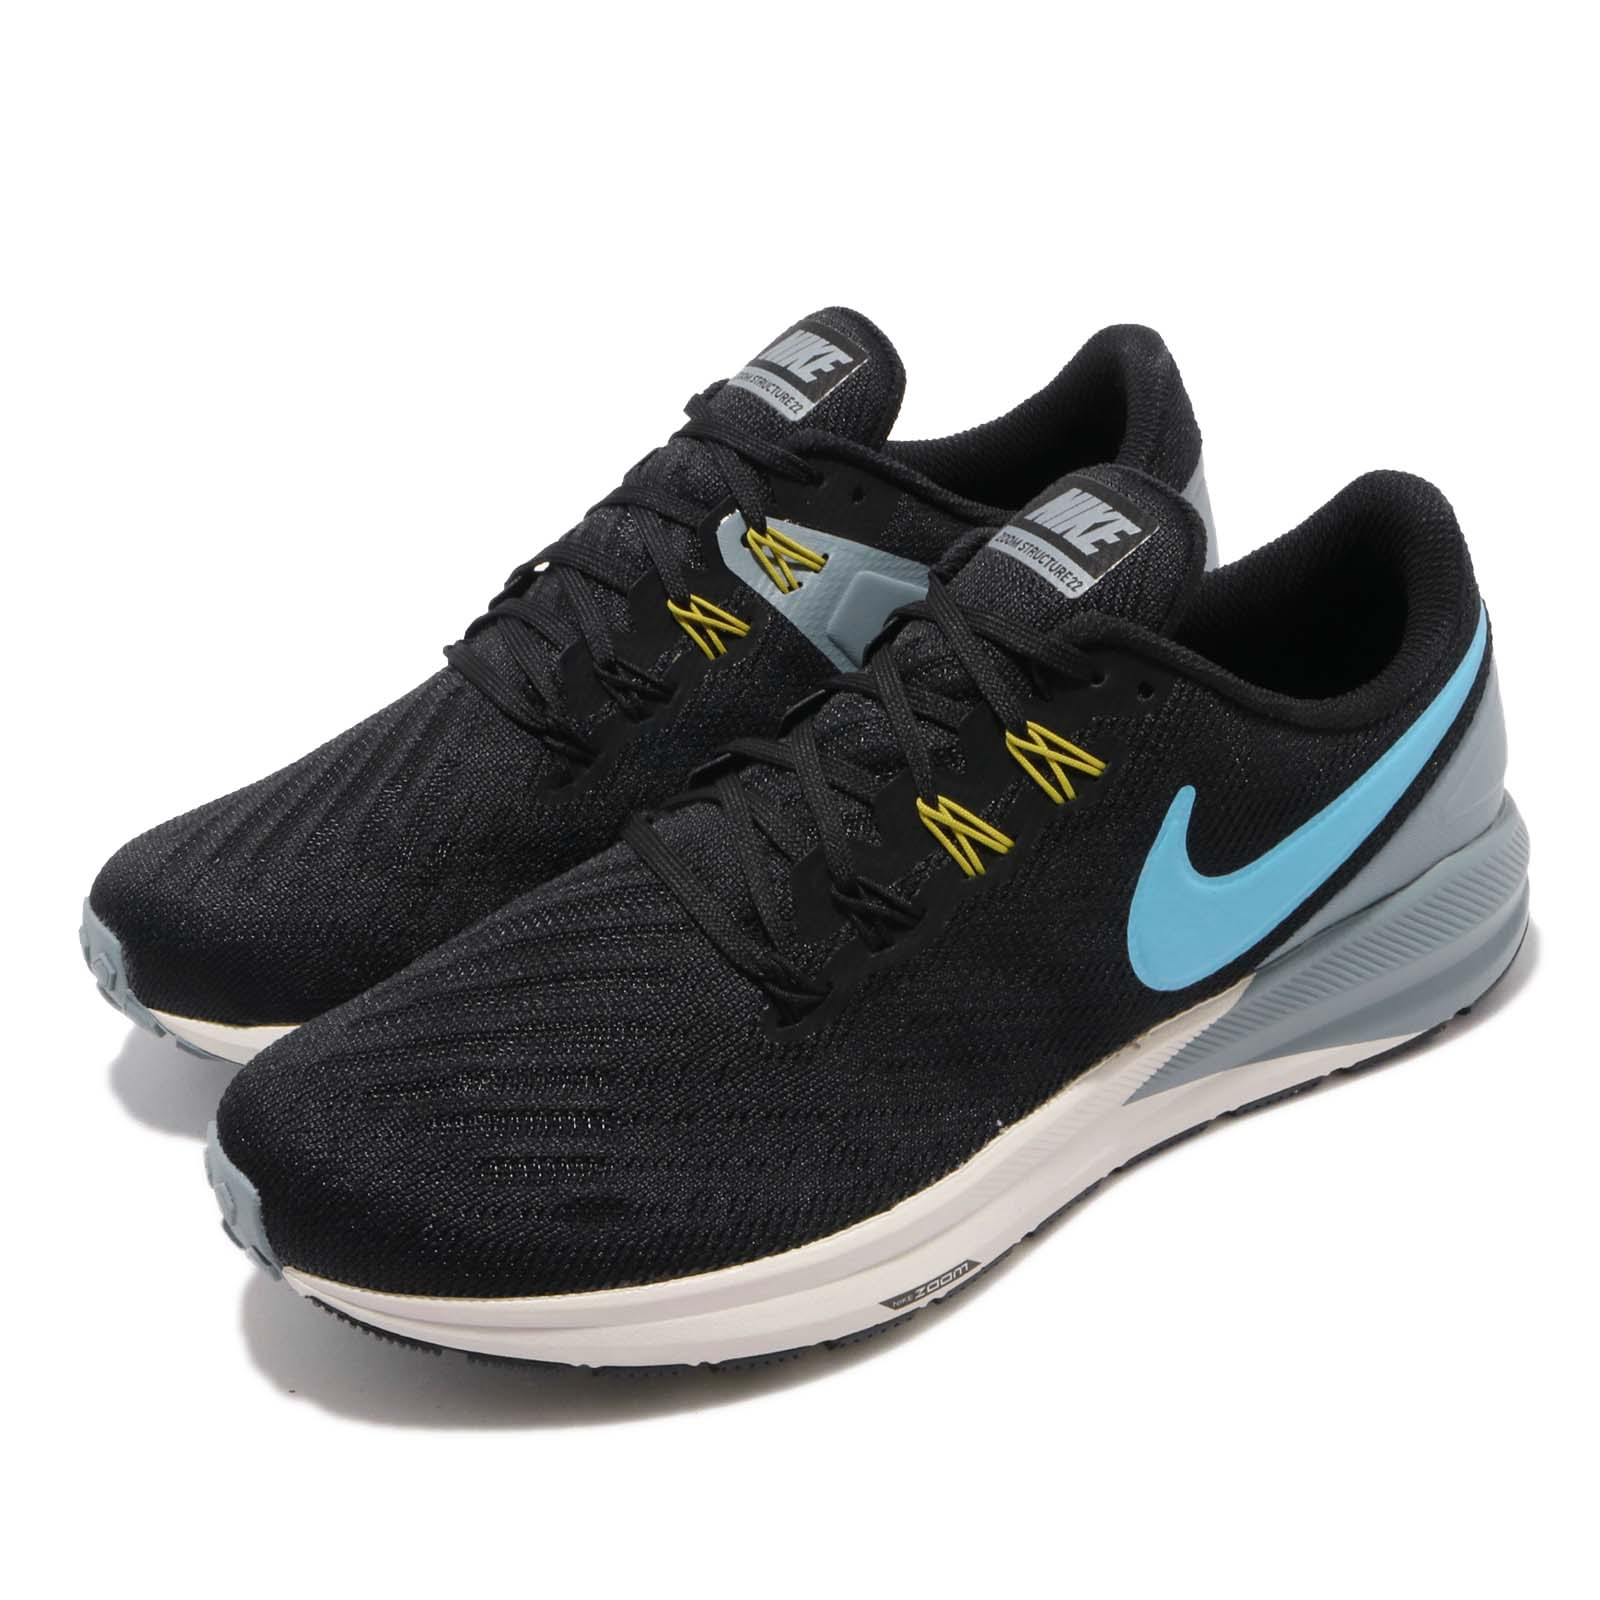 Nike Zoom Structure 22 男鞋 AA1636-005